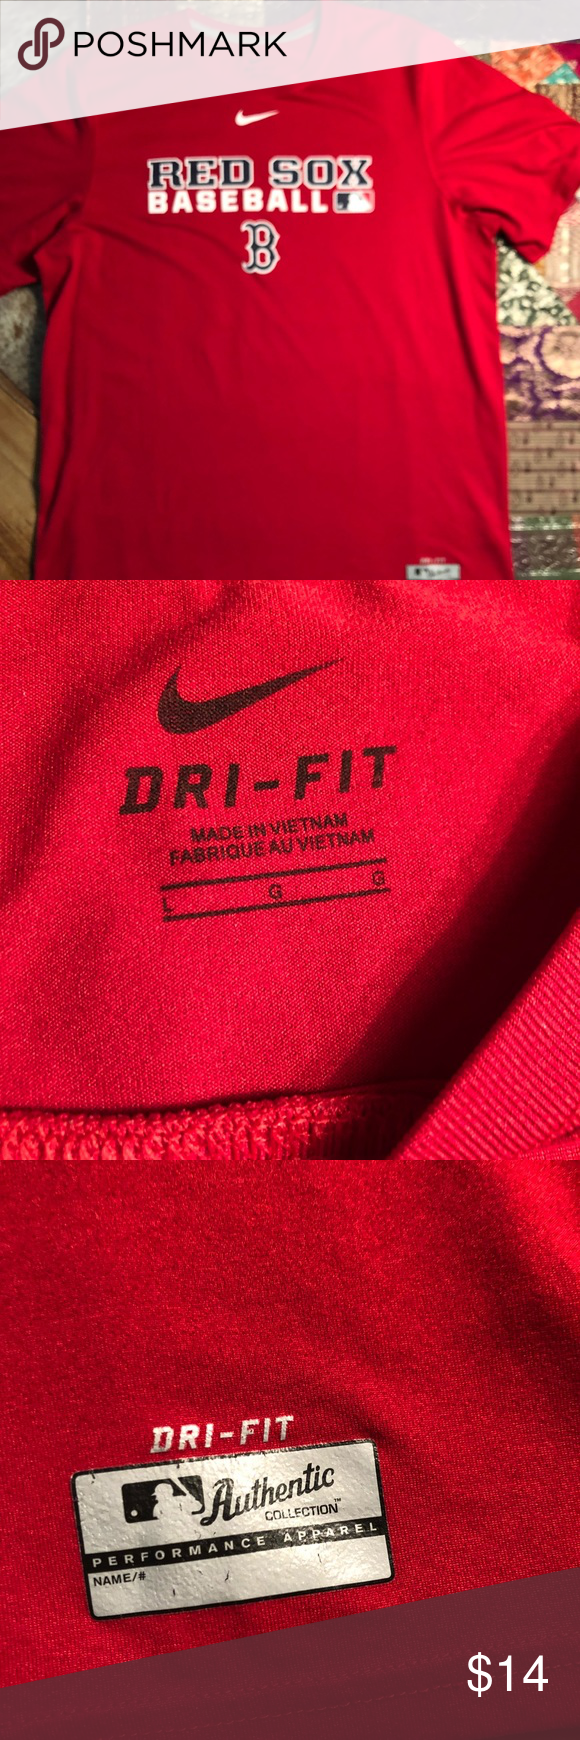 f57252d13 Nike Dri Fit Red Sox Shirts – EDGE Engineering and Consulting Limited